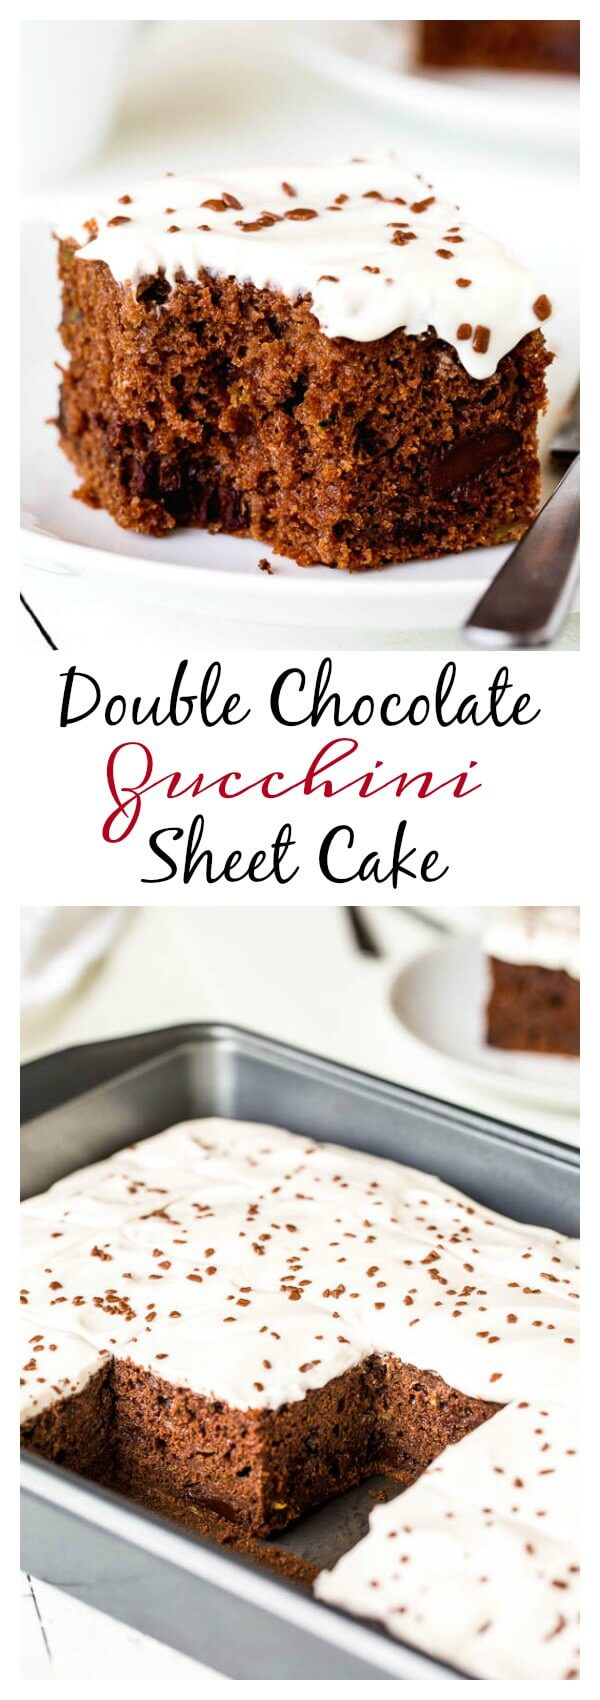 Double Chocolate Zucchini Sheet Cake